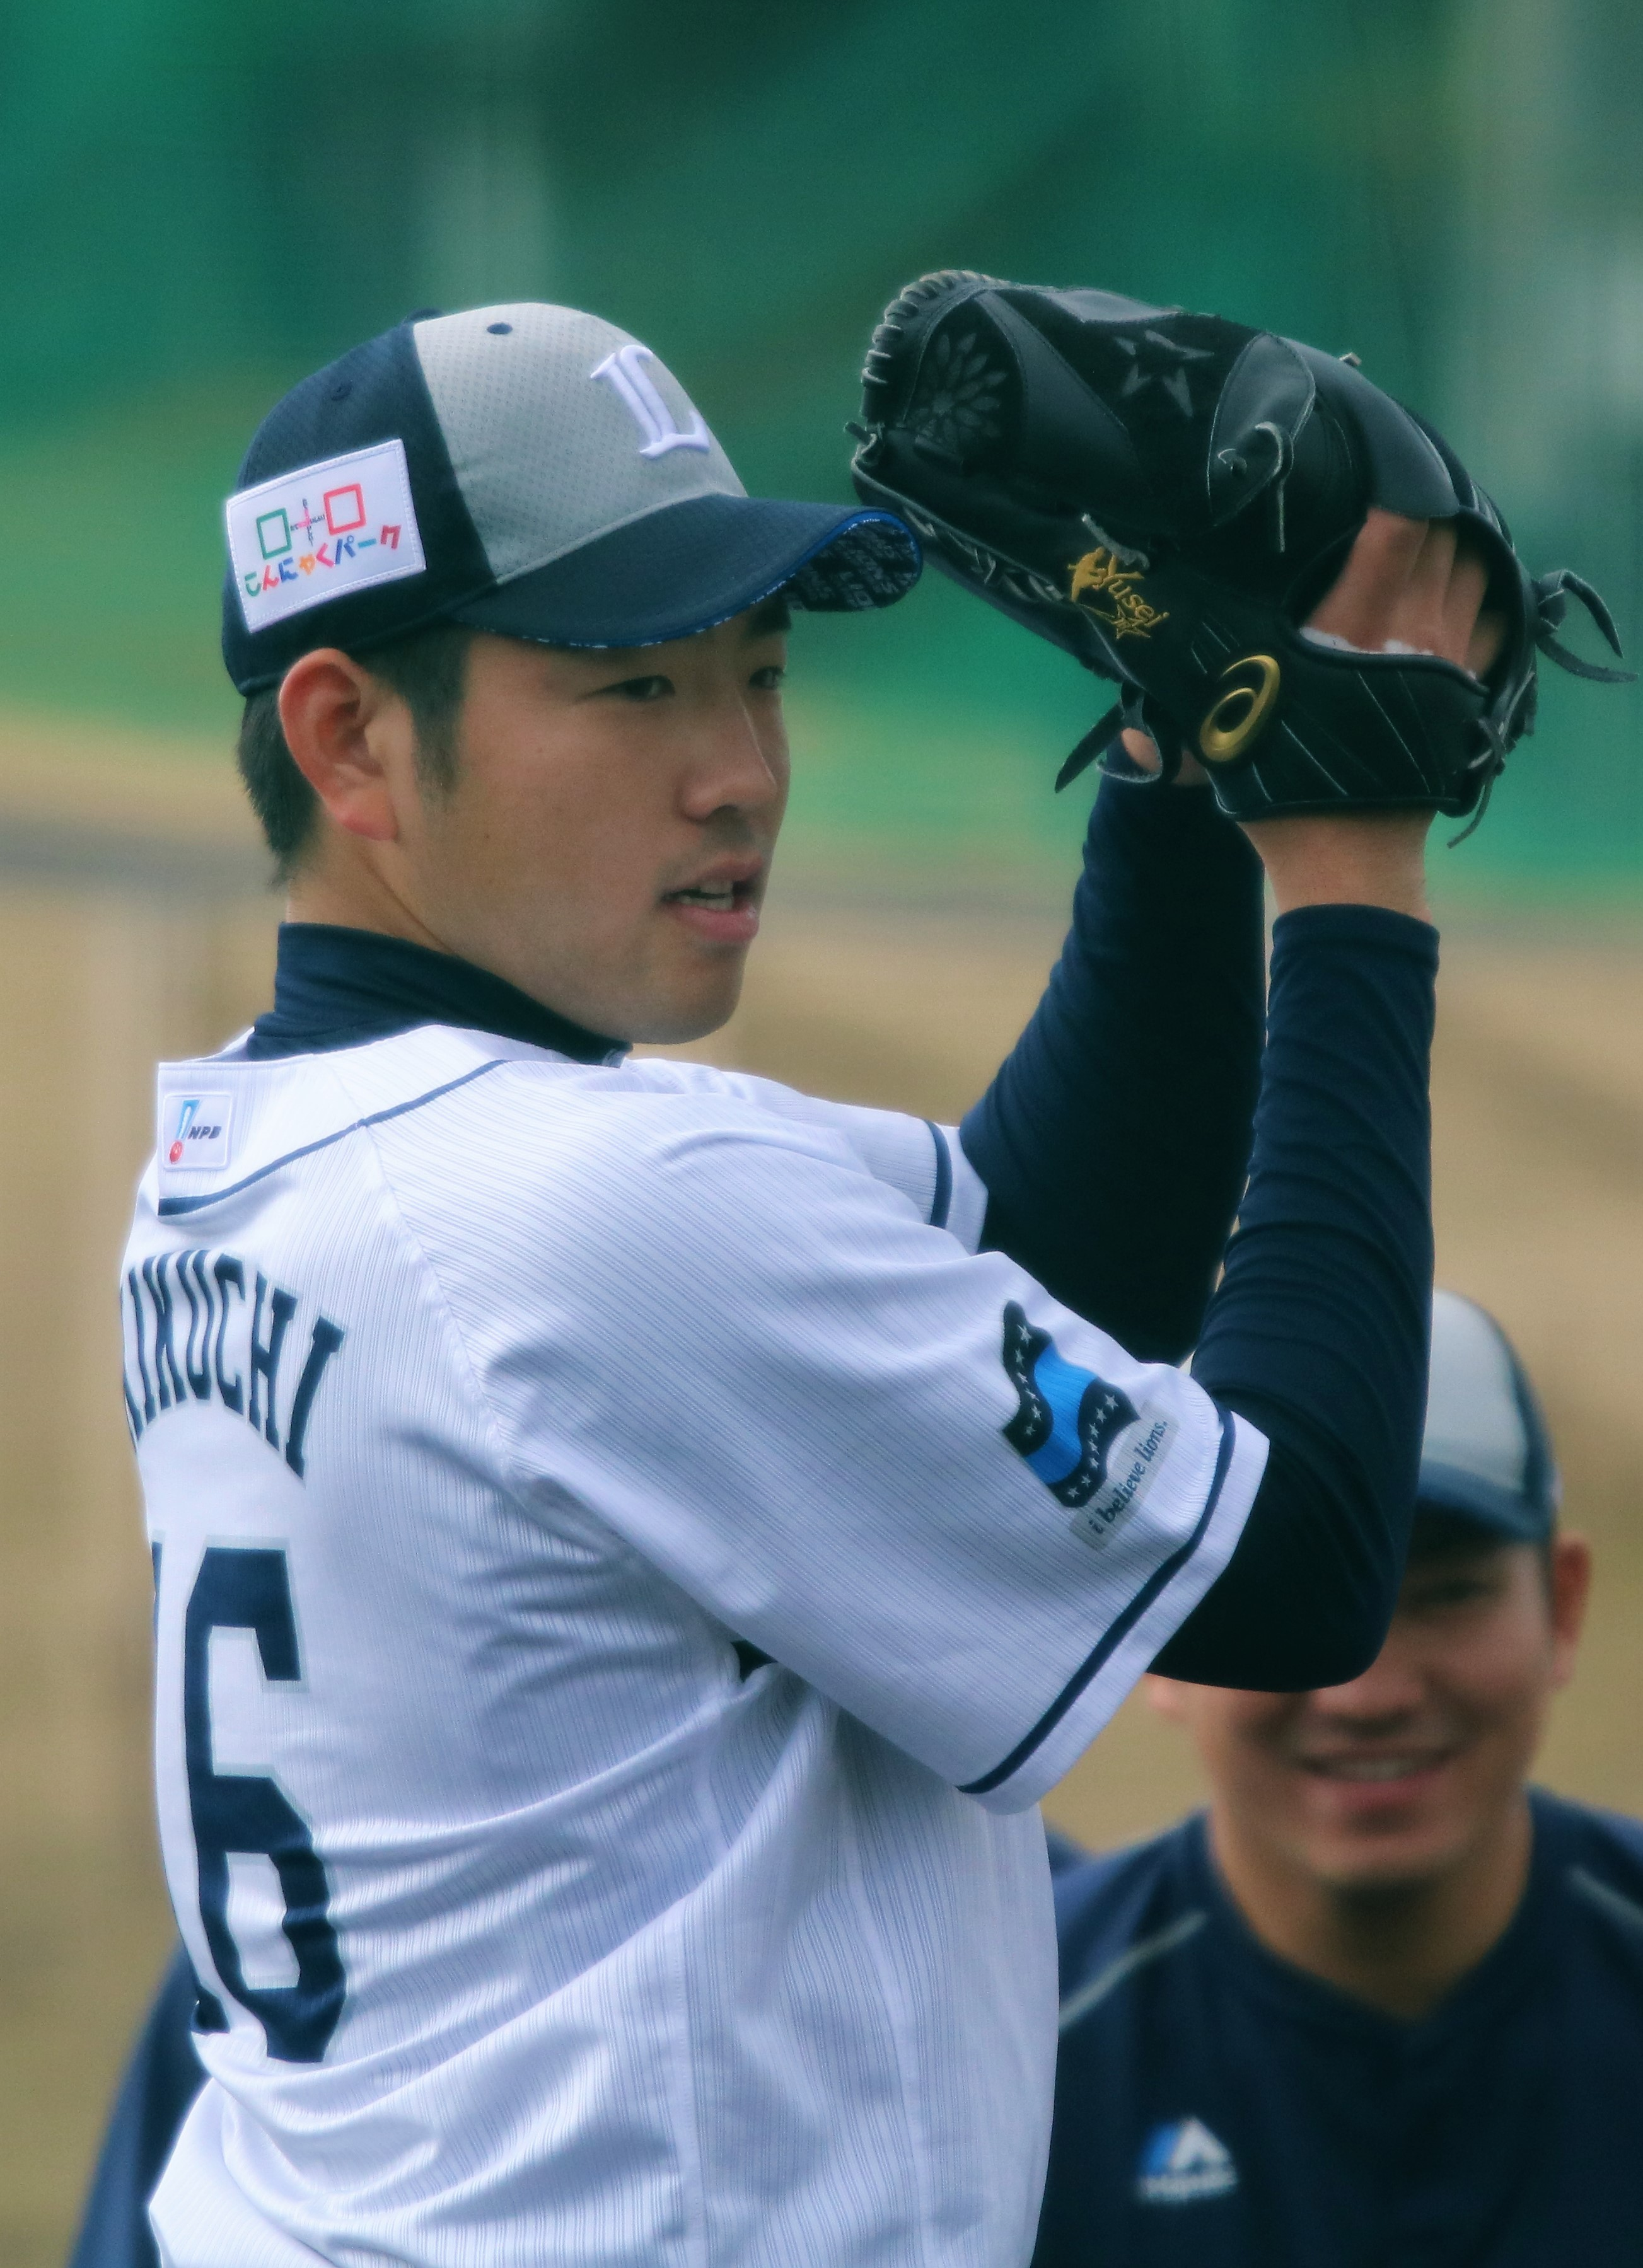 August 18, 2019 -- The Mariners beat the Blue Jays on the road, 7 to 0. The Mariners starting pitcher was Yusei Kikuchi and top hitter was Tom Murphy.